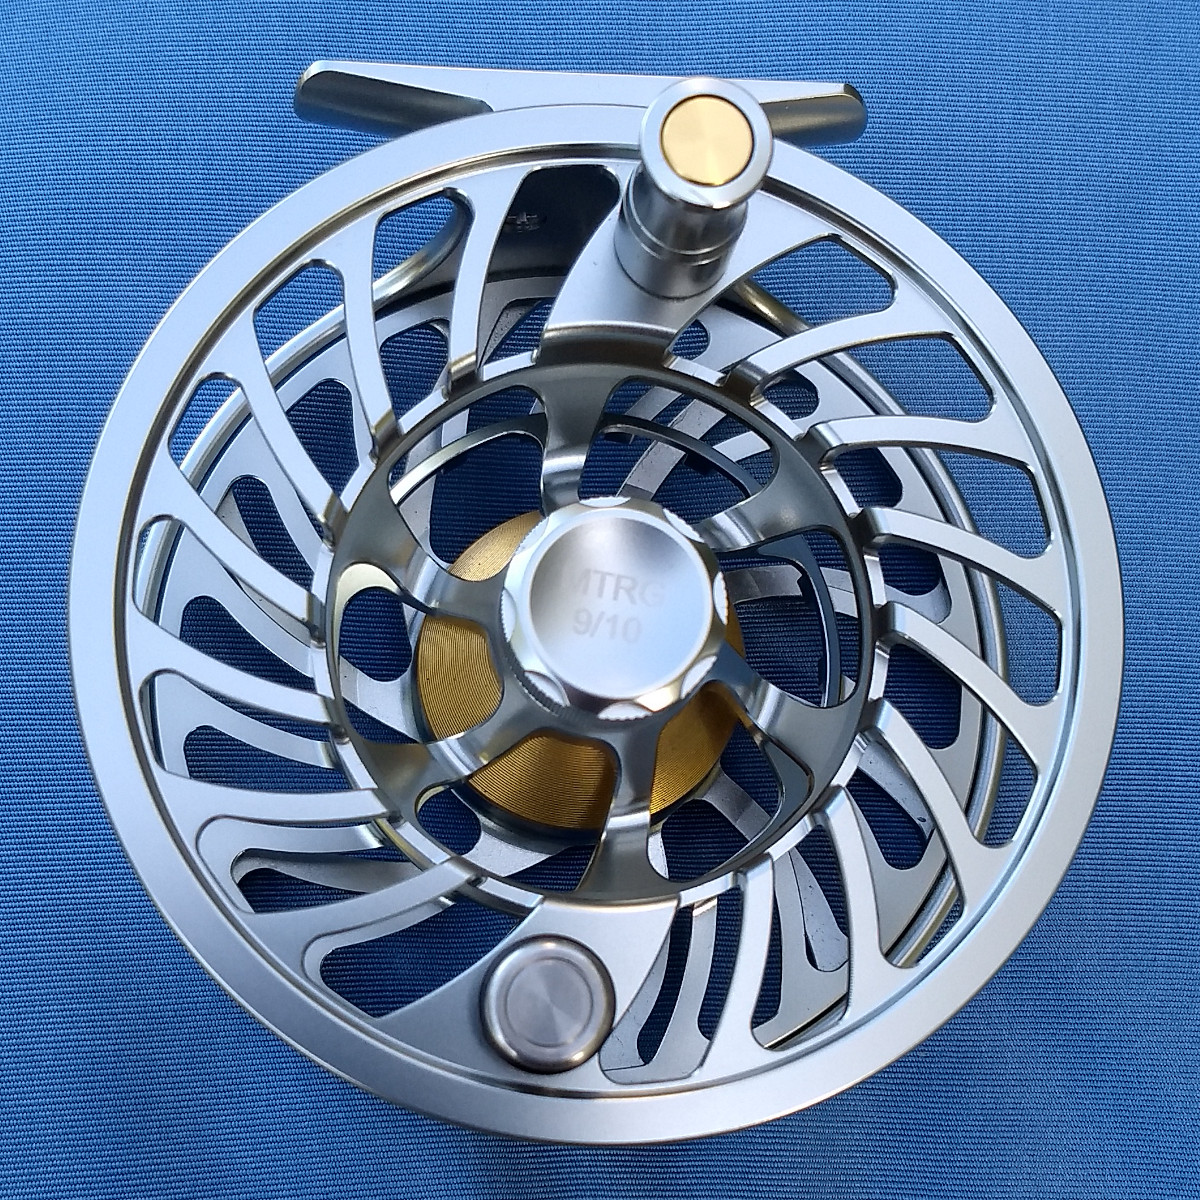 MTRG 9/10 Fly fishing reel